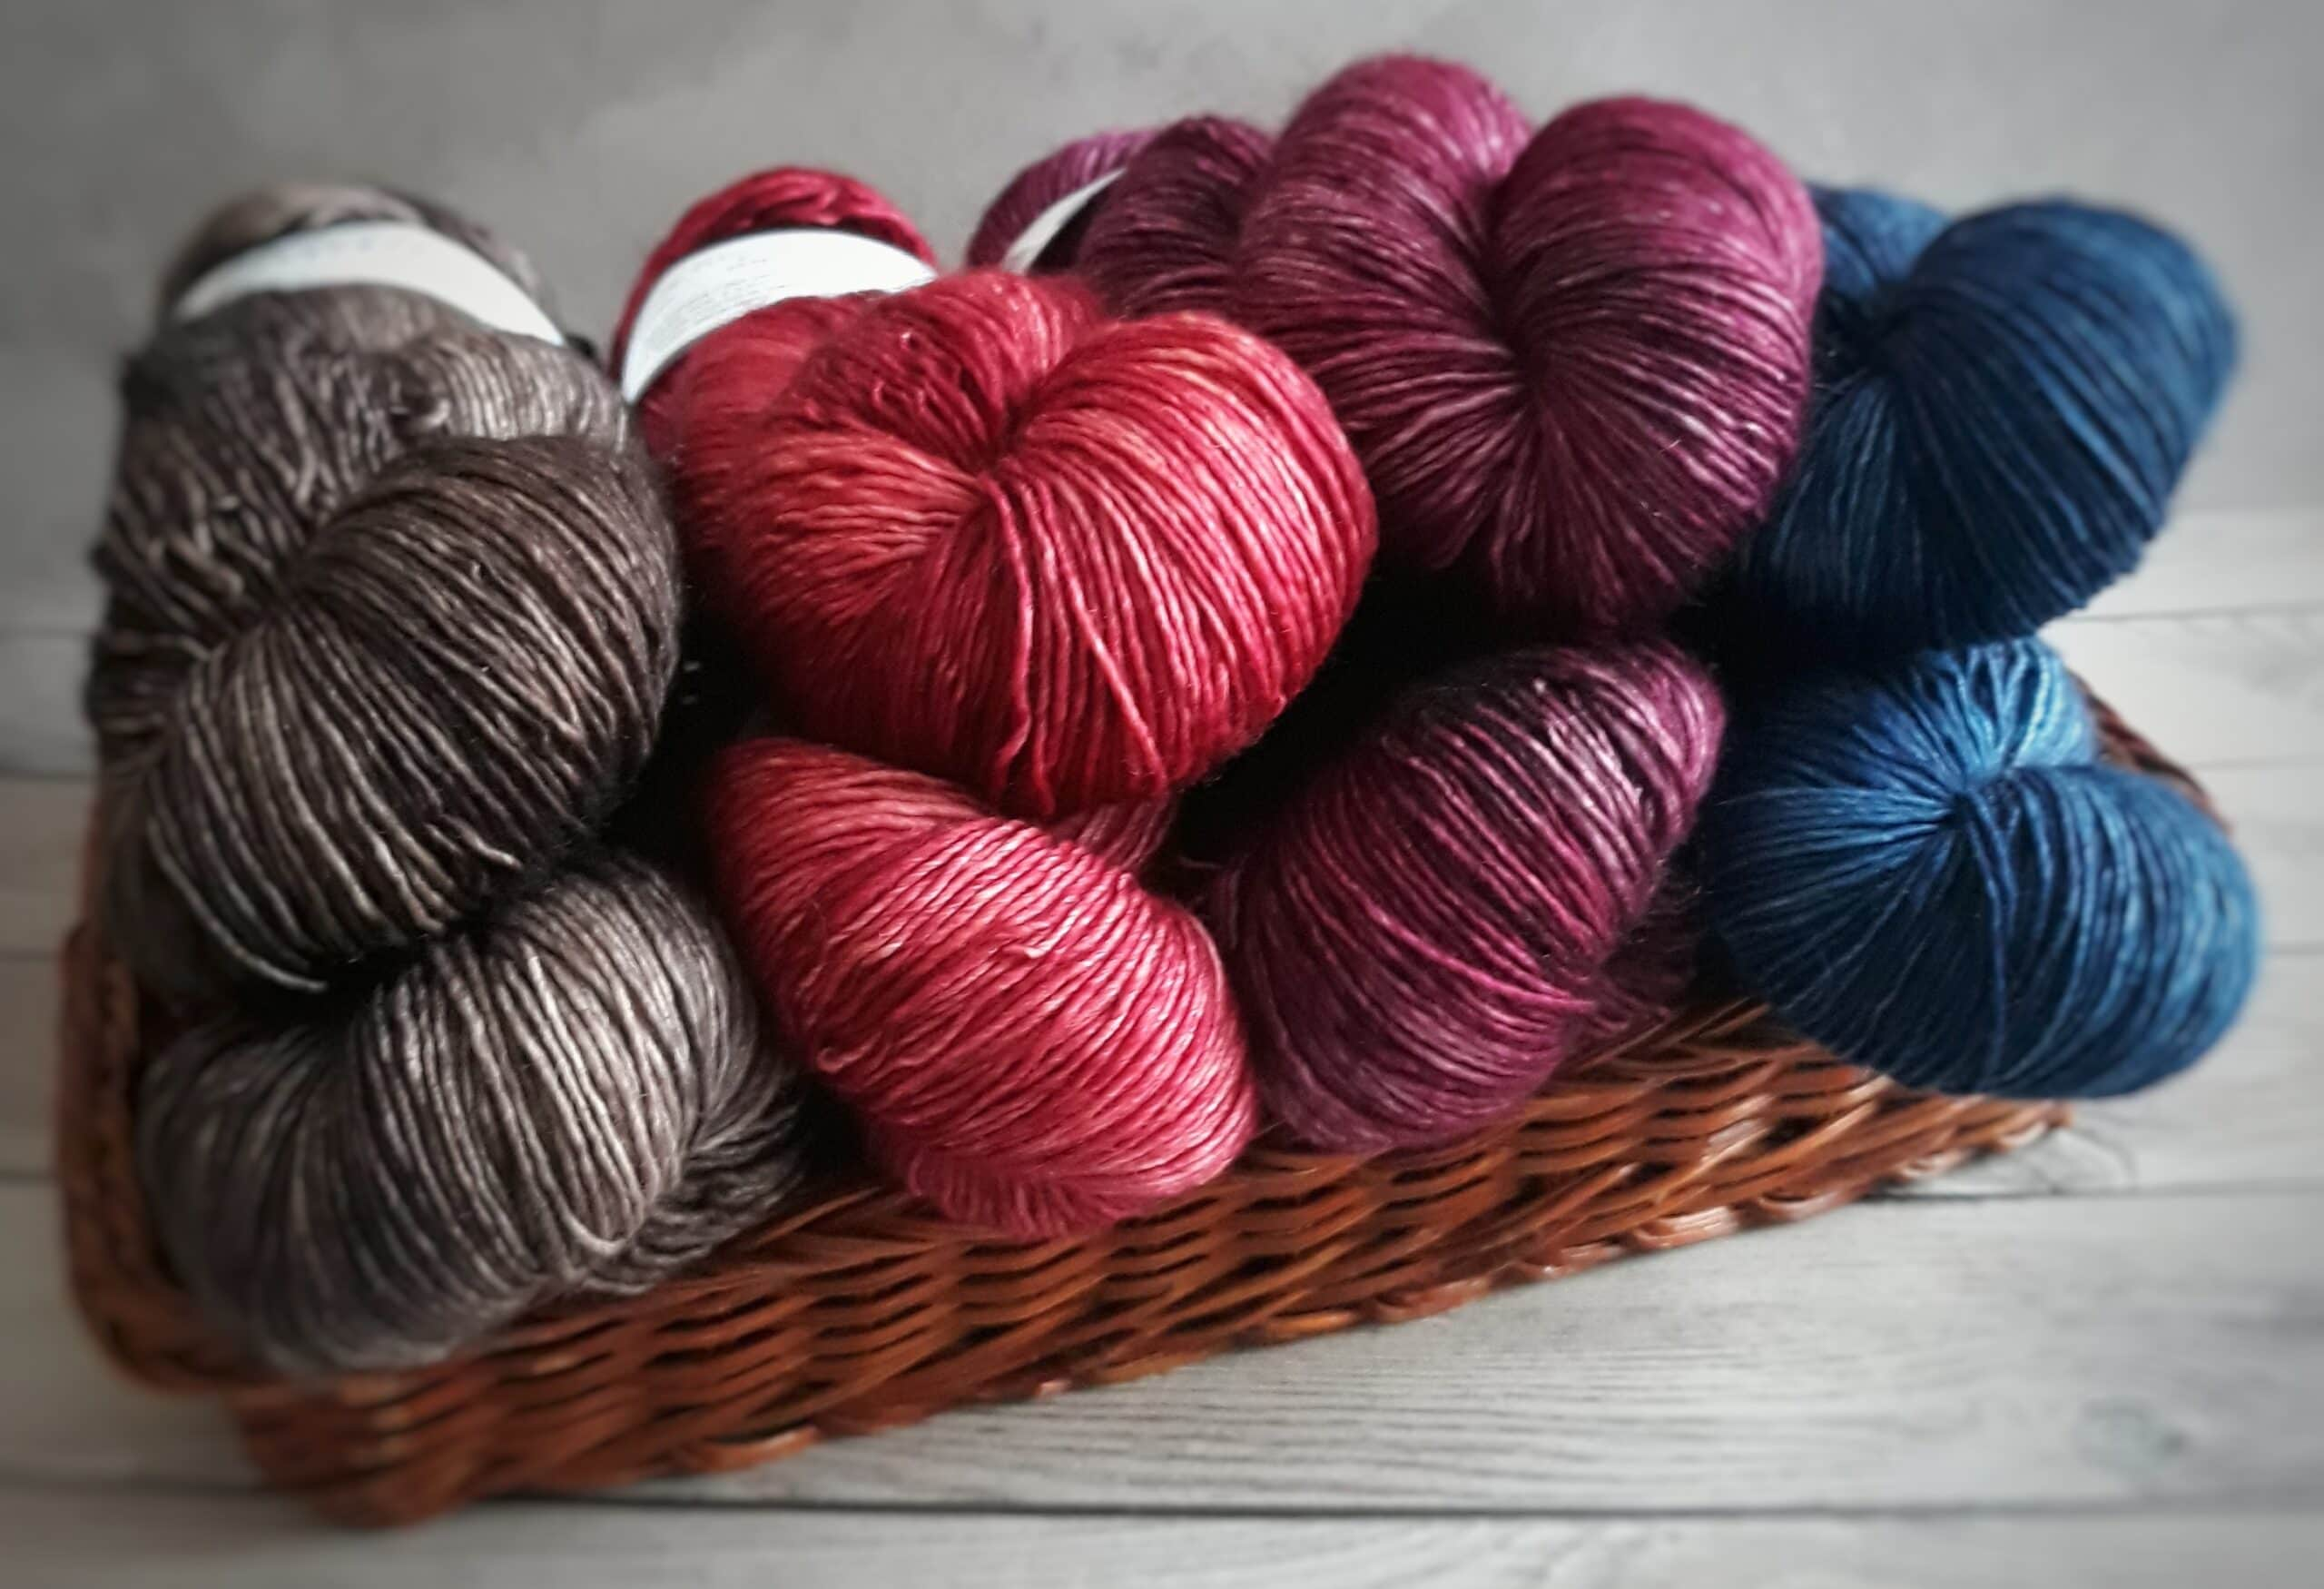 What Is Waste Yarn?